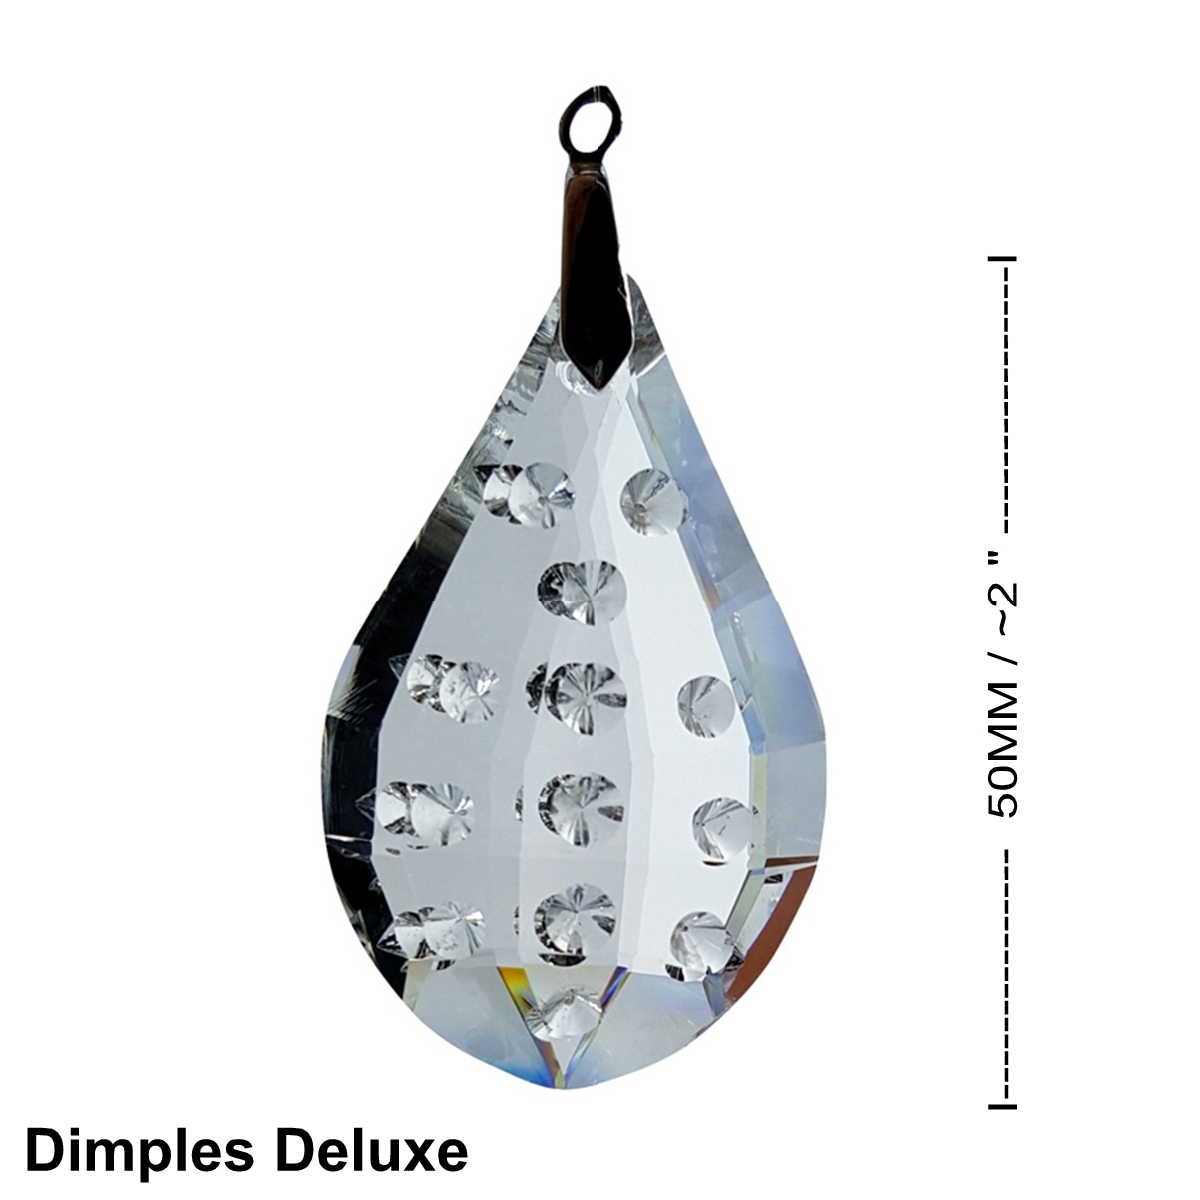 Crystal Dimples Deluxe Feng Shui Window Prism 50mm / 2 Inches